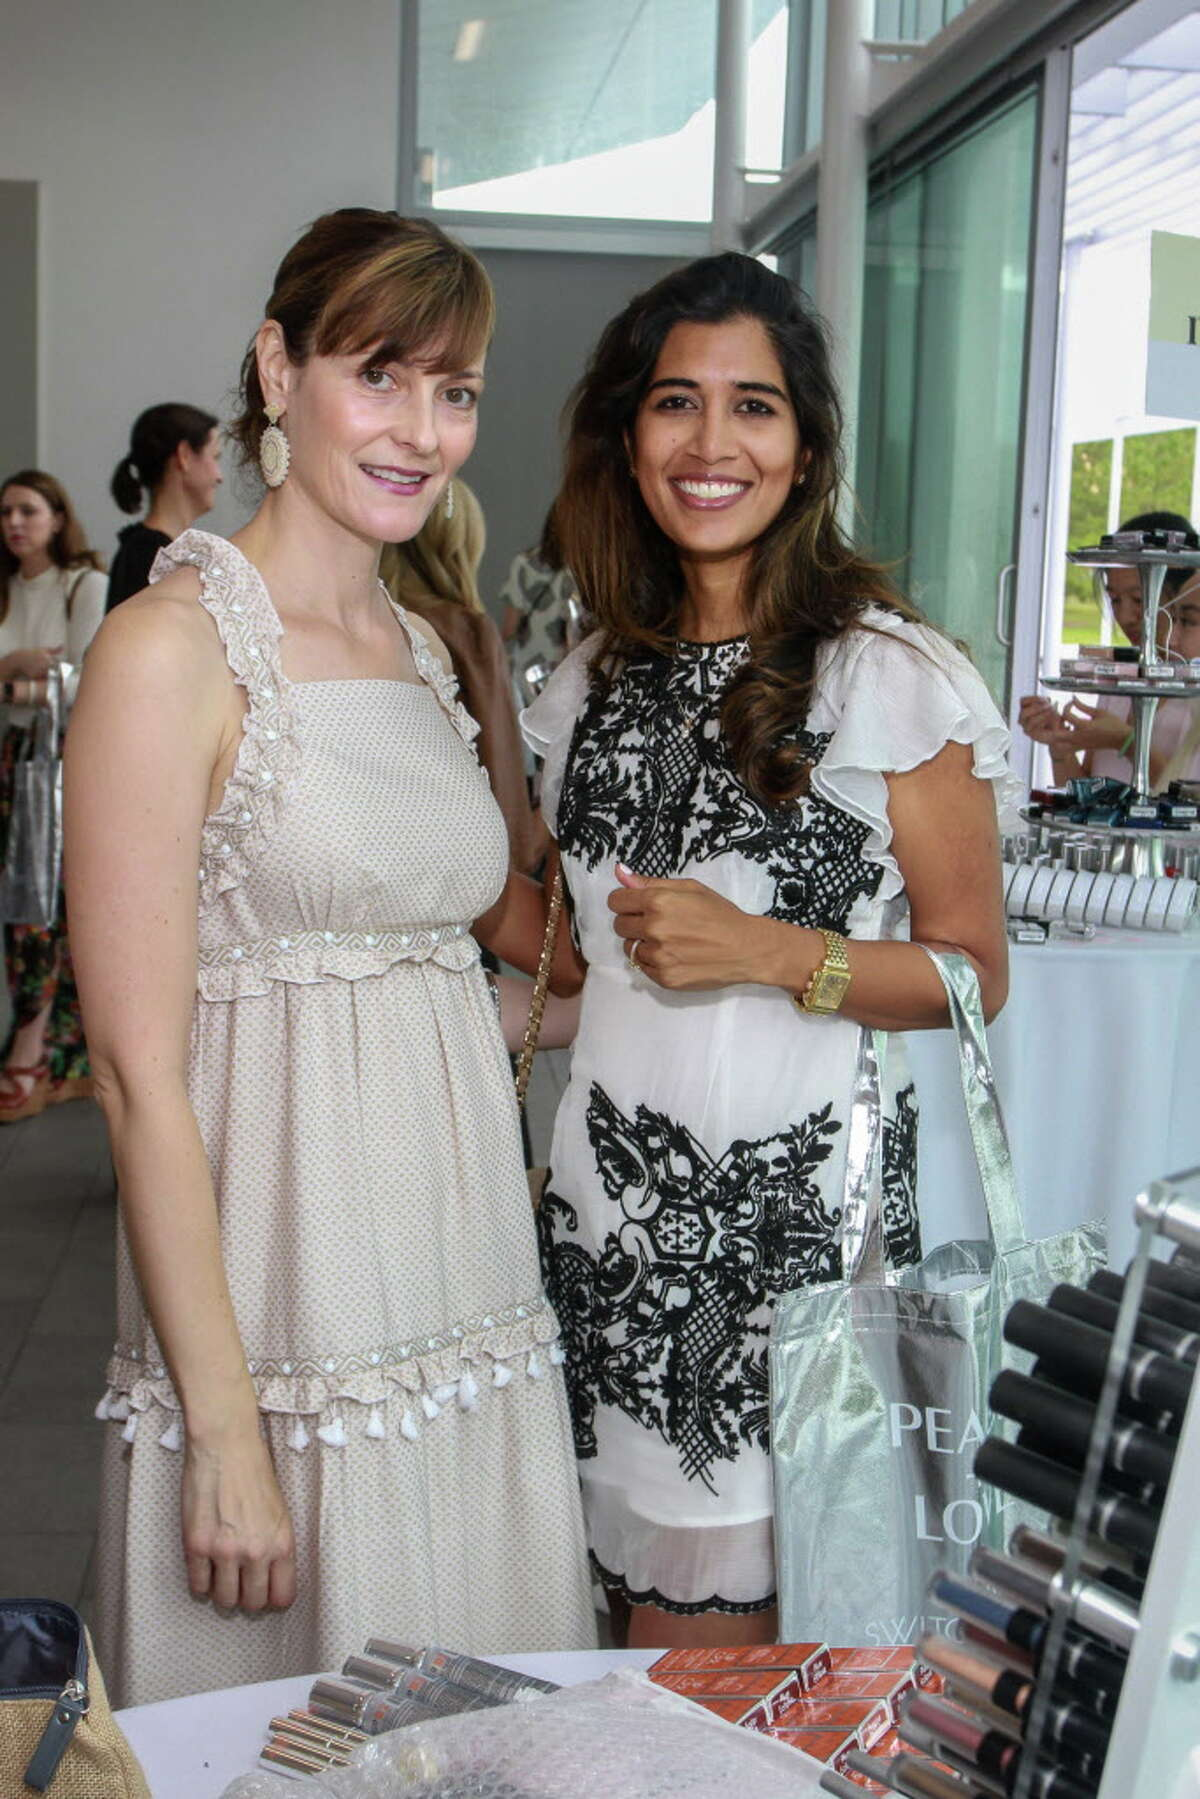 Vicky Wight, left, and Divya Brown at the debut of